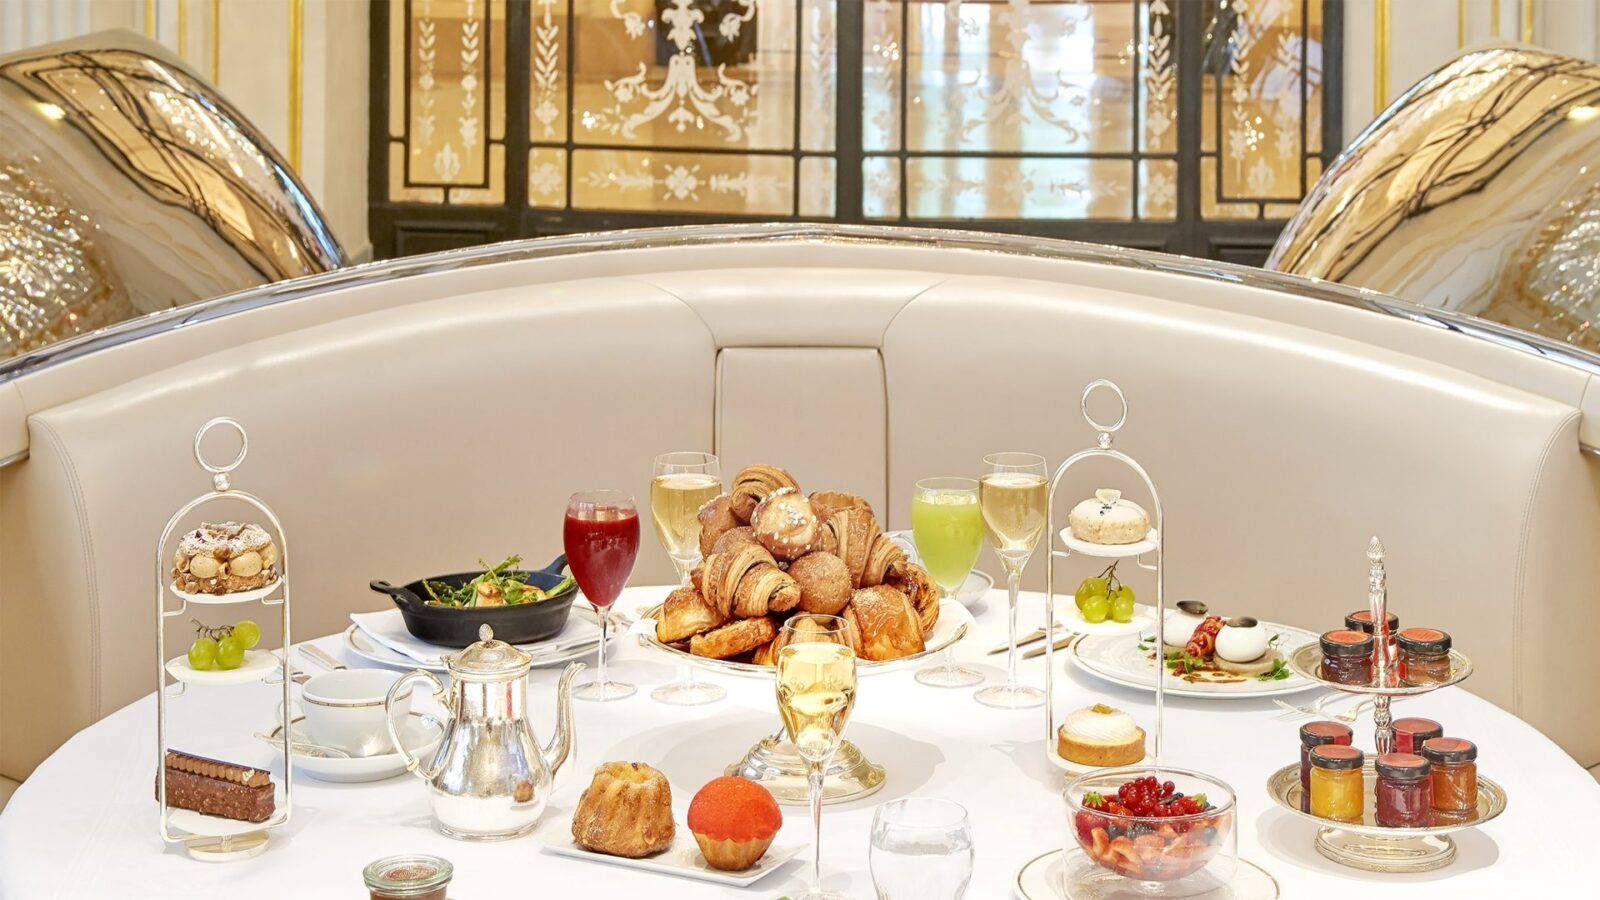 Brunch at Hôtel Plaza Athénée, Paris